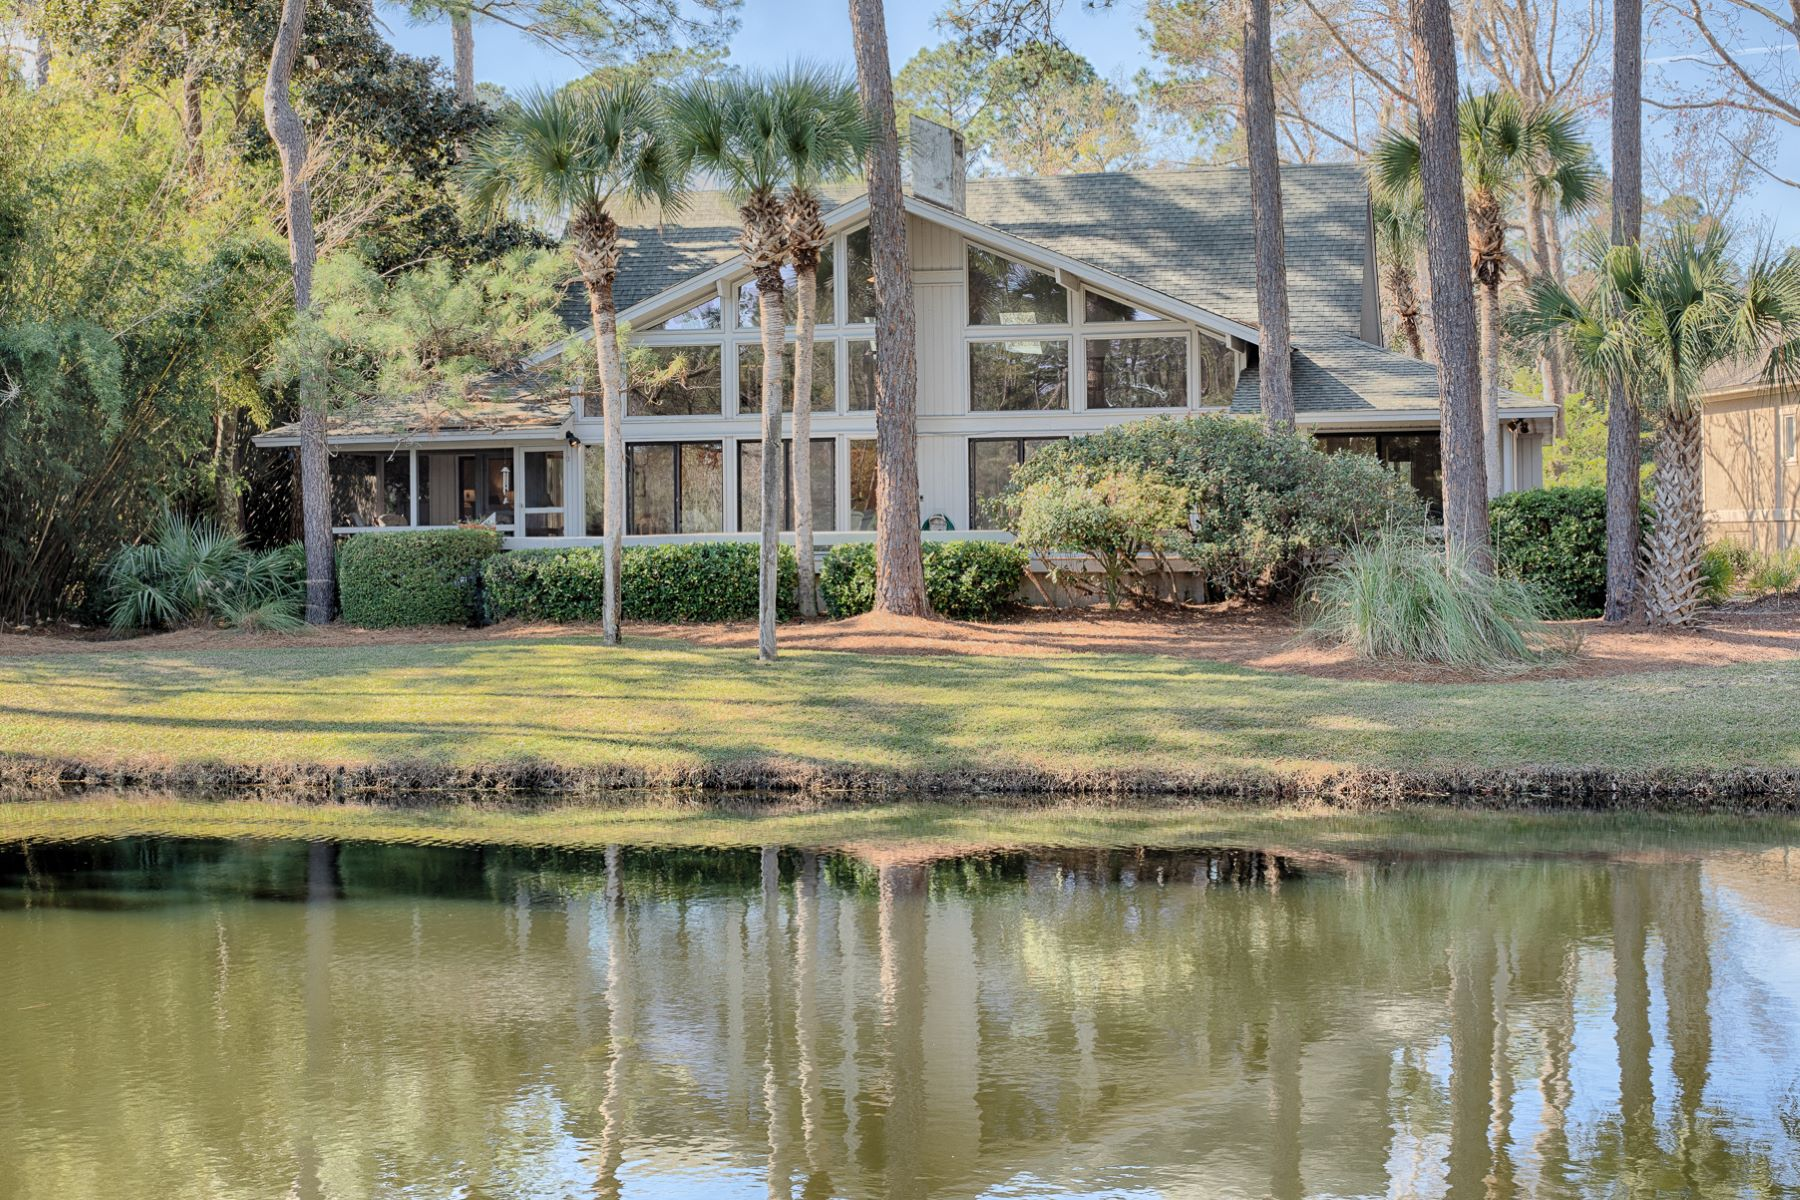 Single Family Homes for Active at 7 Long Brow Hilton Head Island, South Carolina 29928 United States